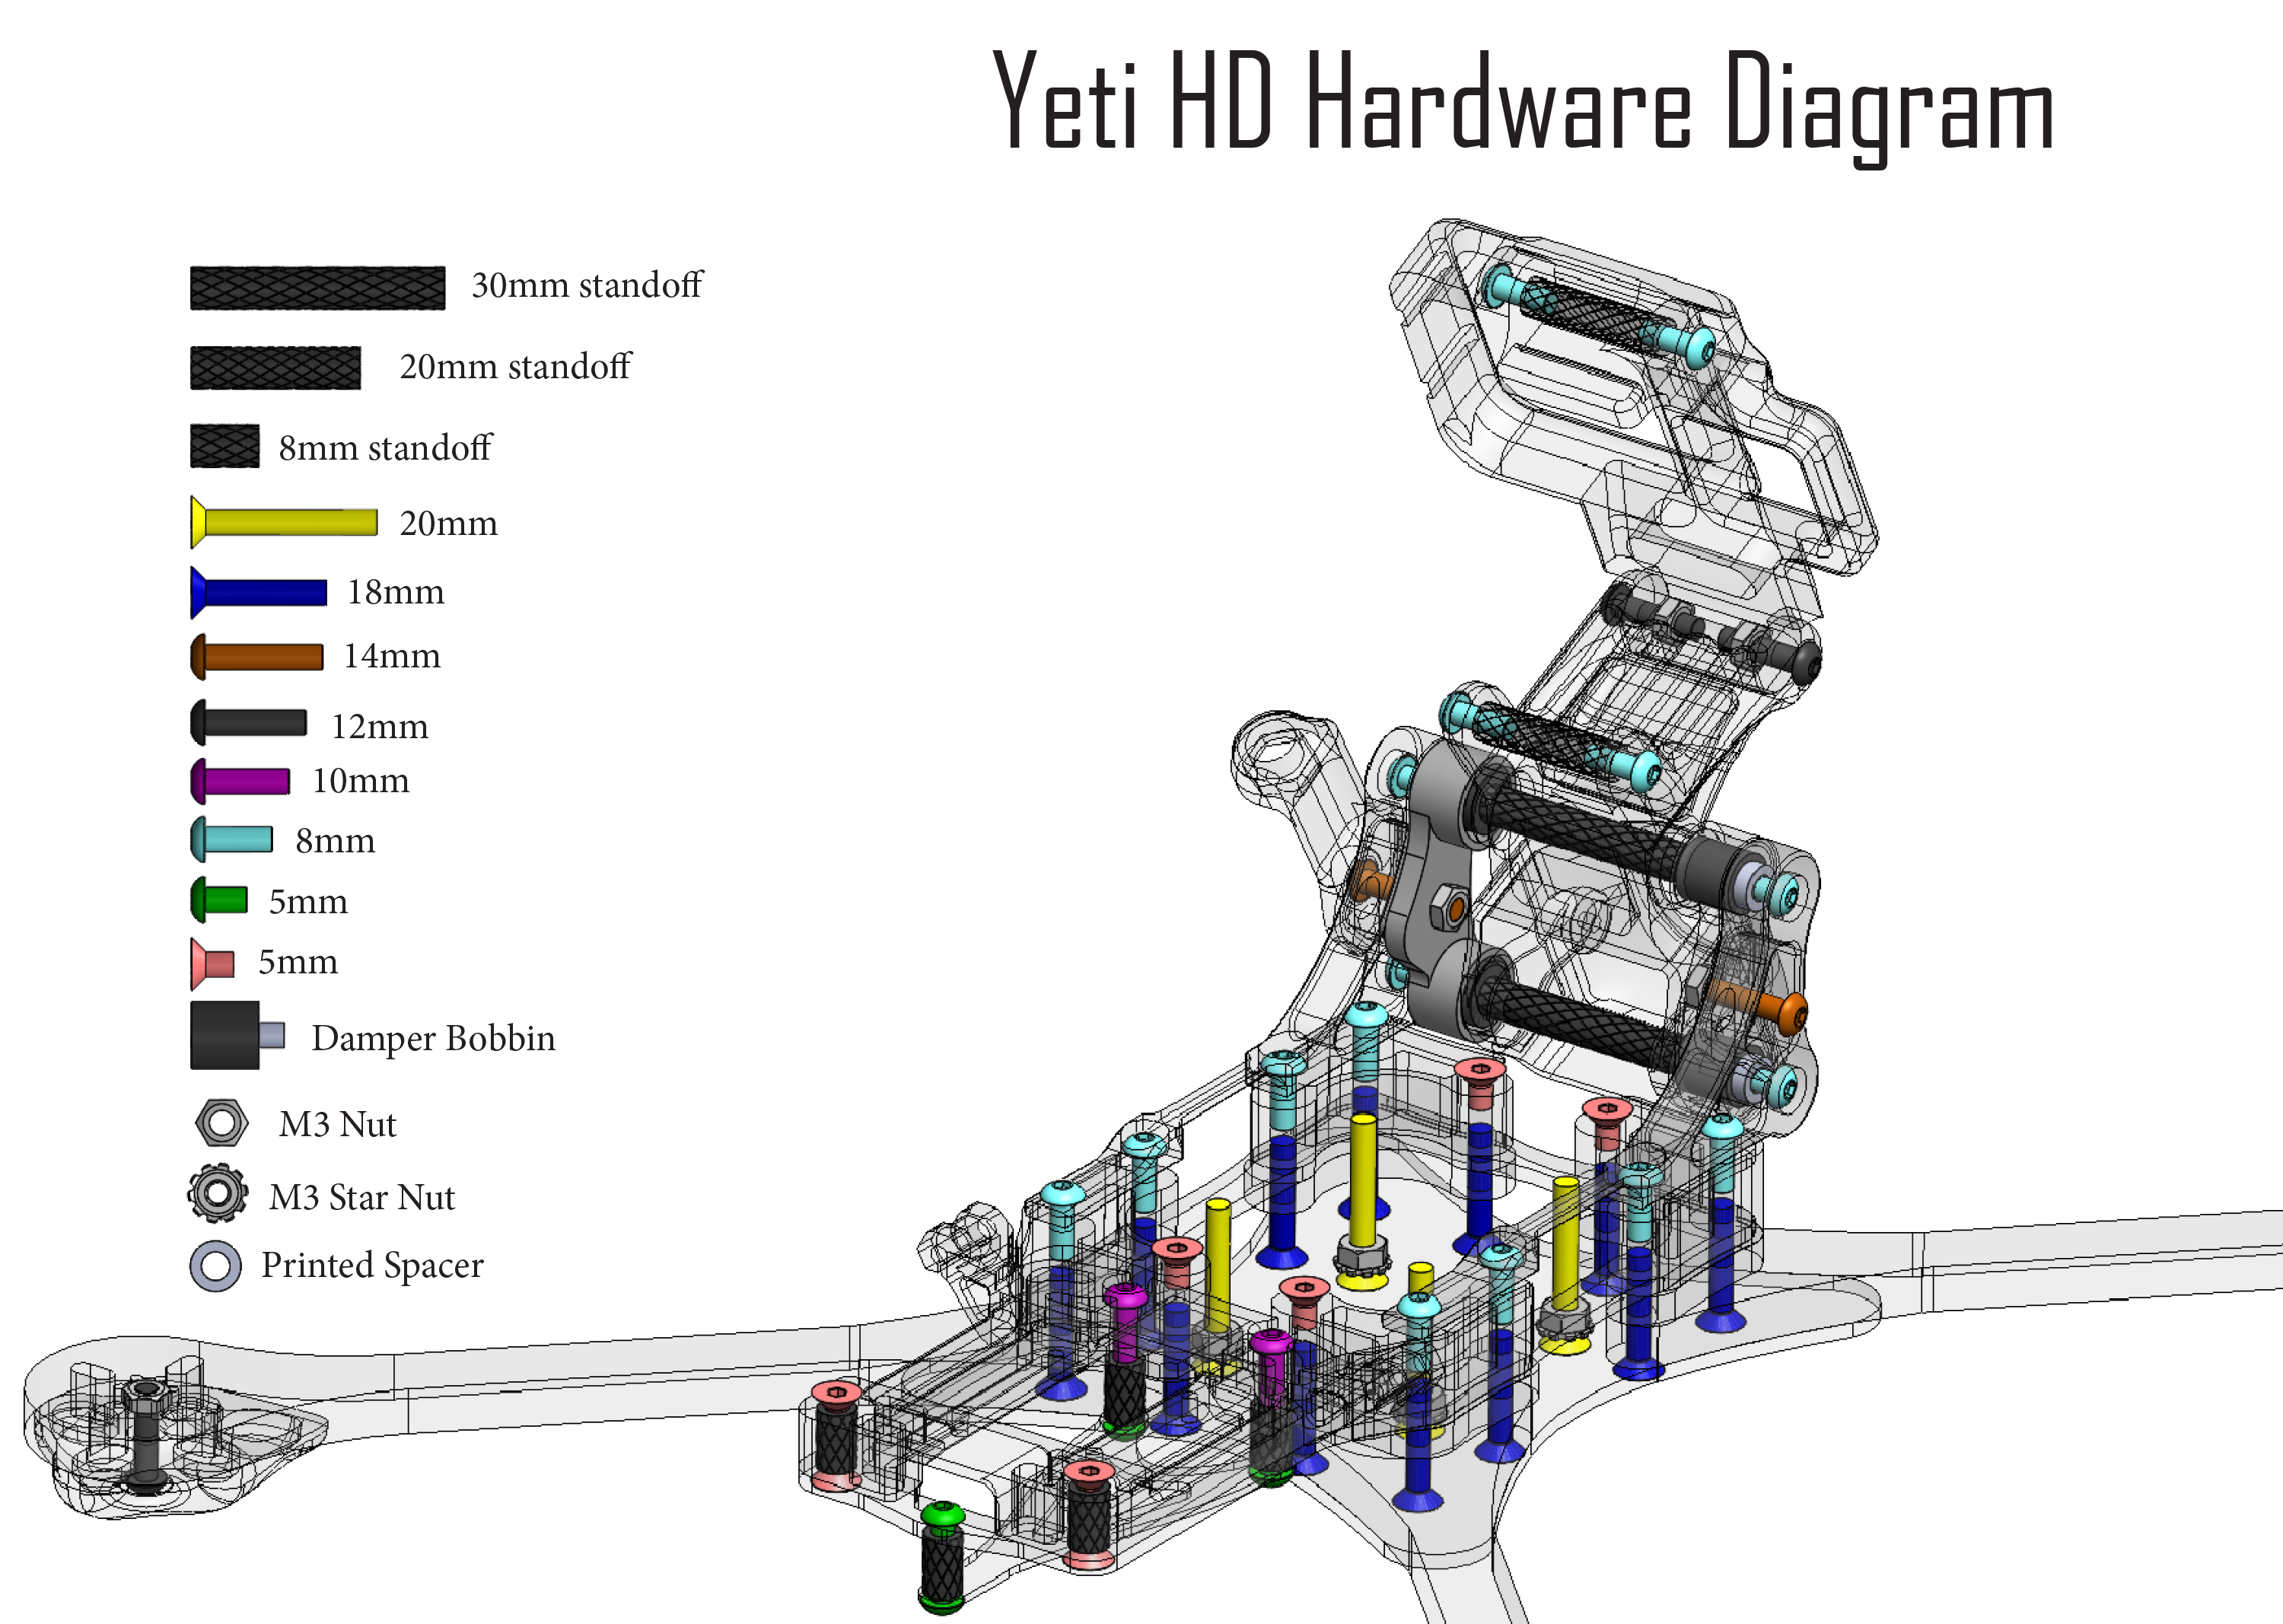 yeti-hd-8-10in-hardware-diagram.jpg